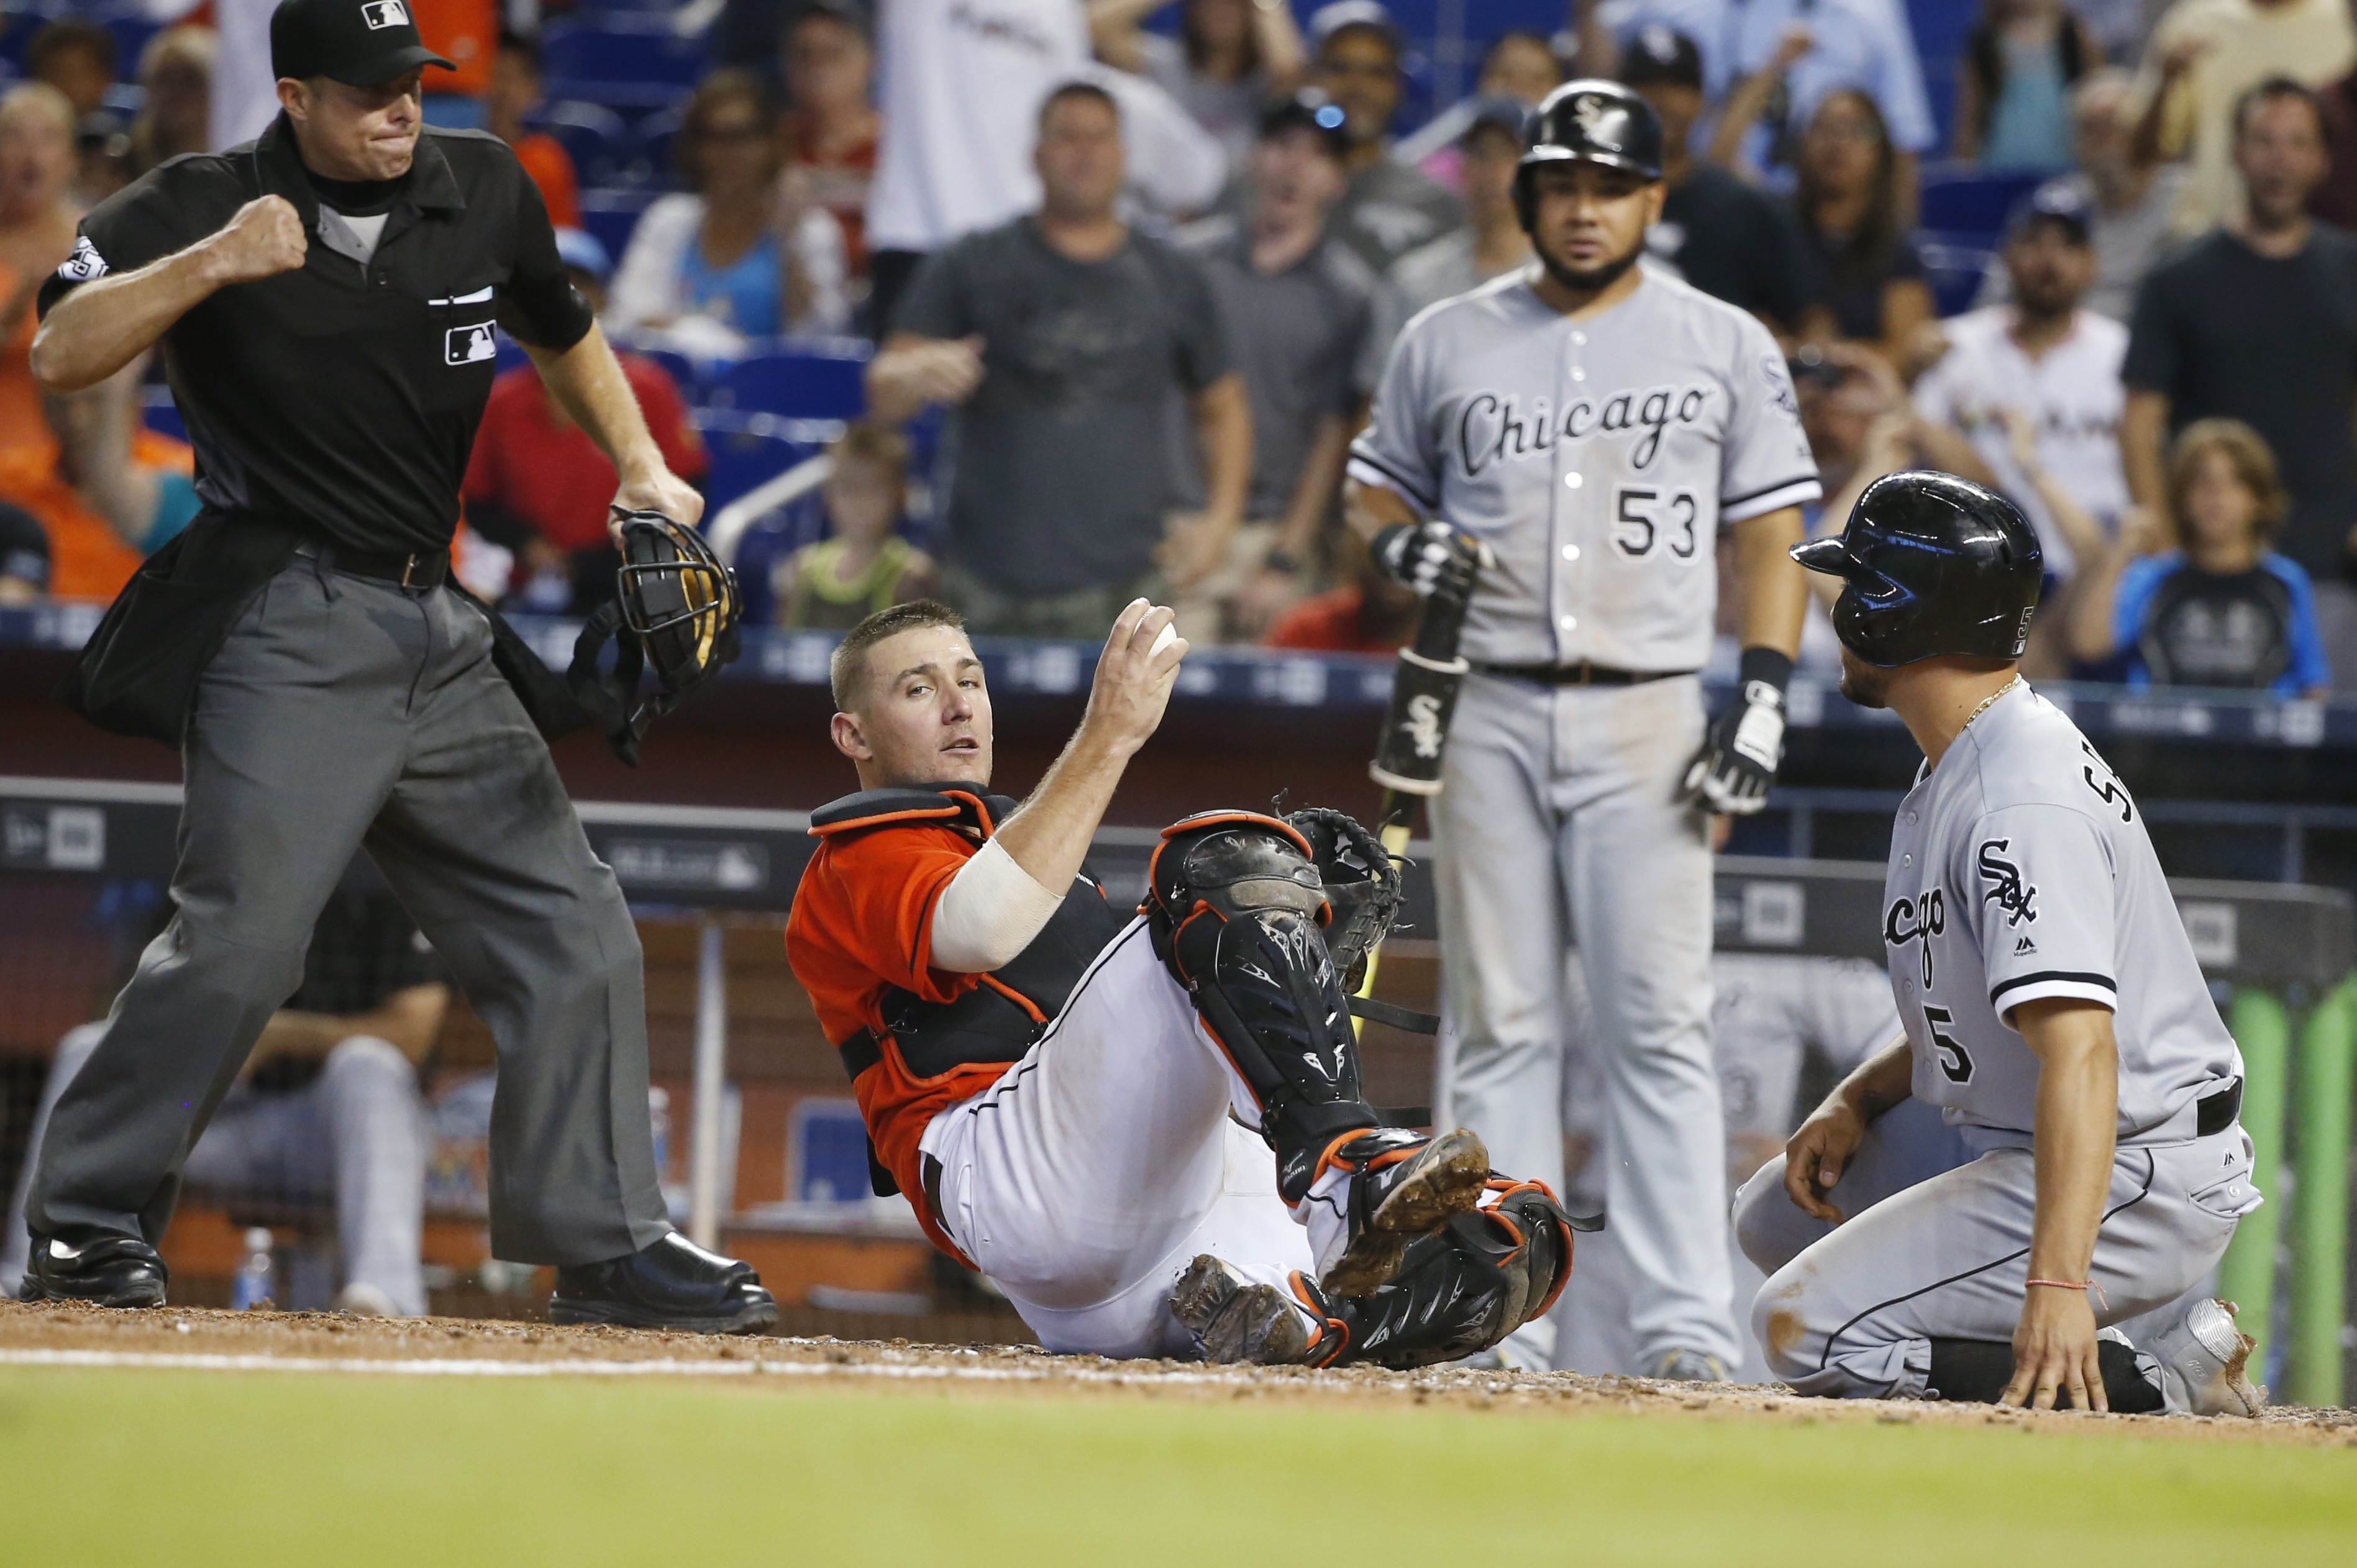 Miami Marlins catcher Jeff Mathis, second from left, holds on to the ball as home plate umpire Tripp Gibson, left, signals the out after Mathis tagged out Chicago White Sox pinch-runner Carlos Sanchez (5) at the plate to end the baseball game, Sunday, Aug